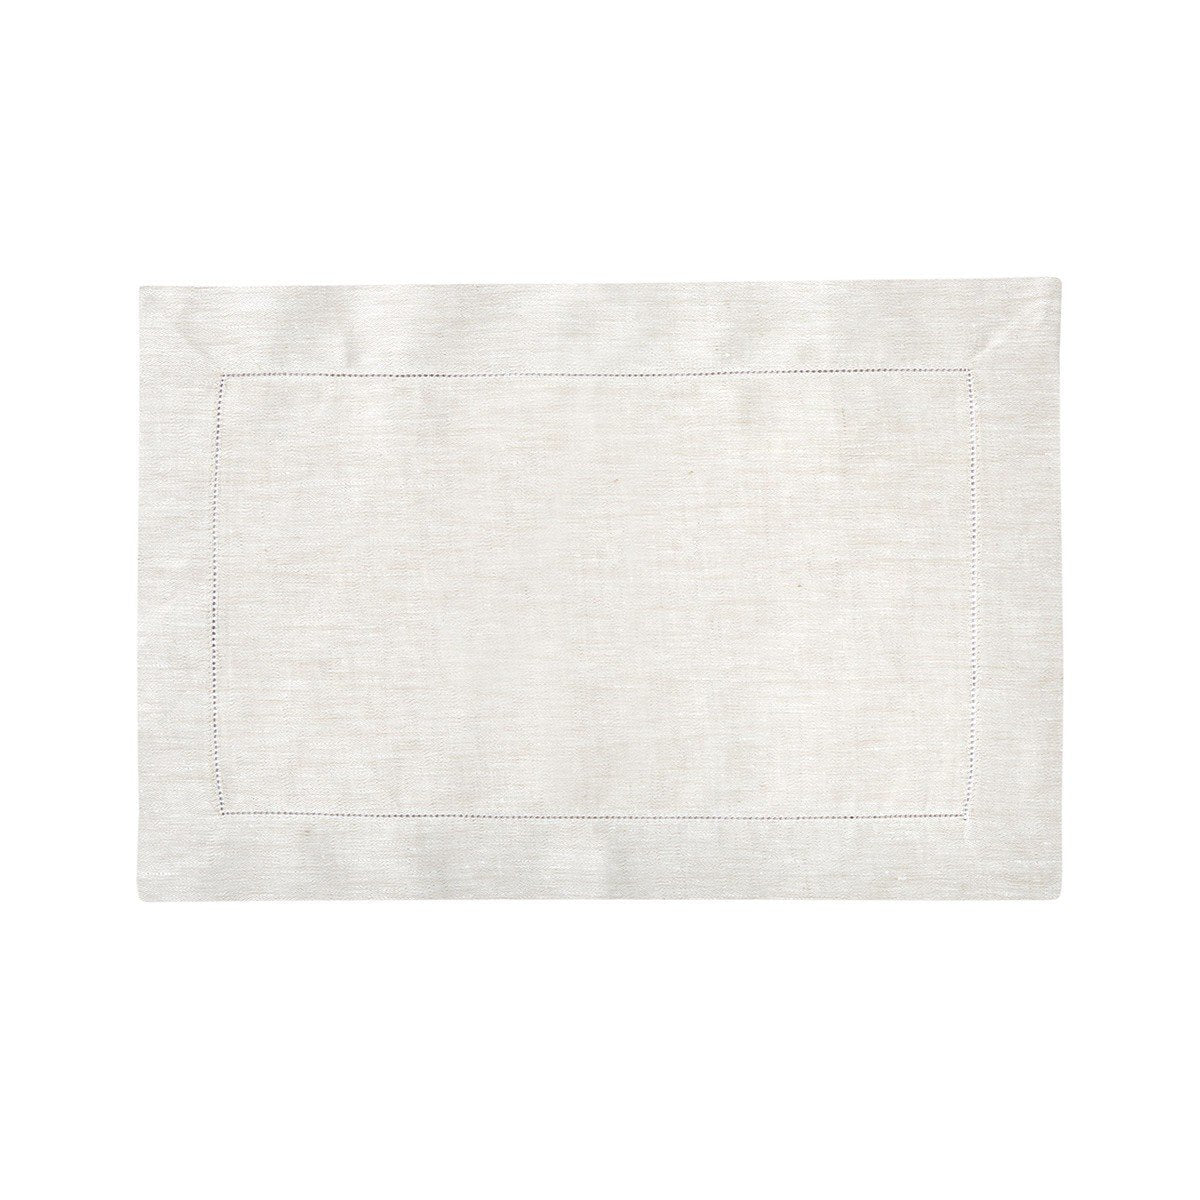 Liso Pierre Table Linens by Yves Delorme Fig Linens placemat